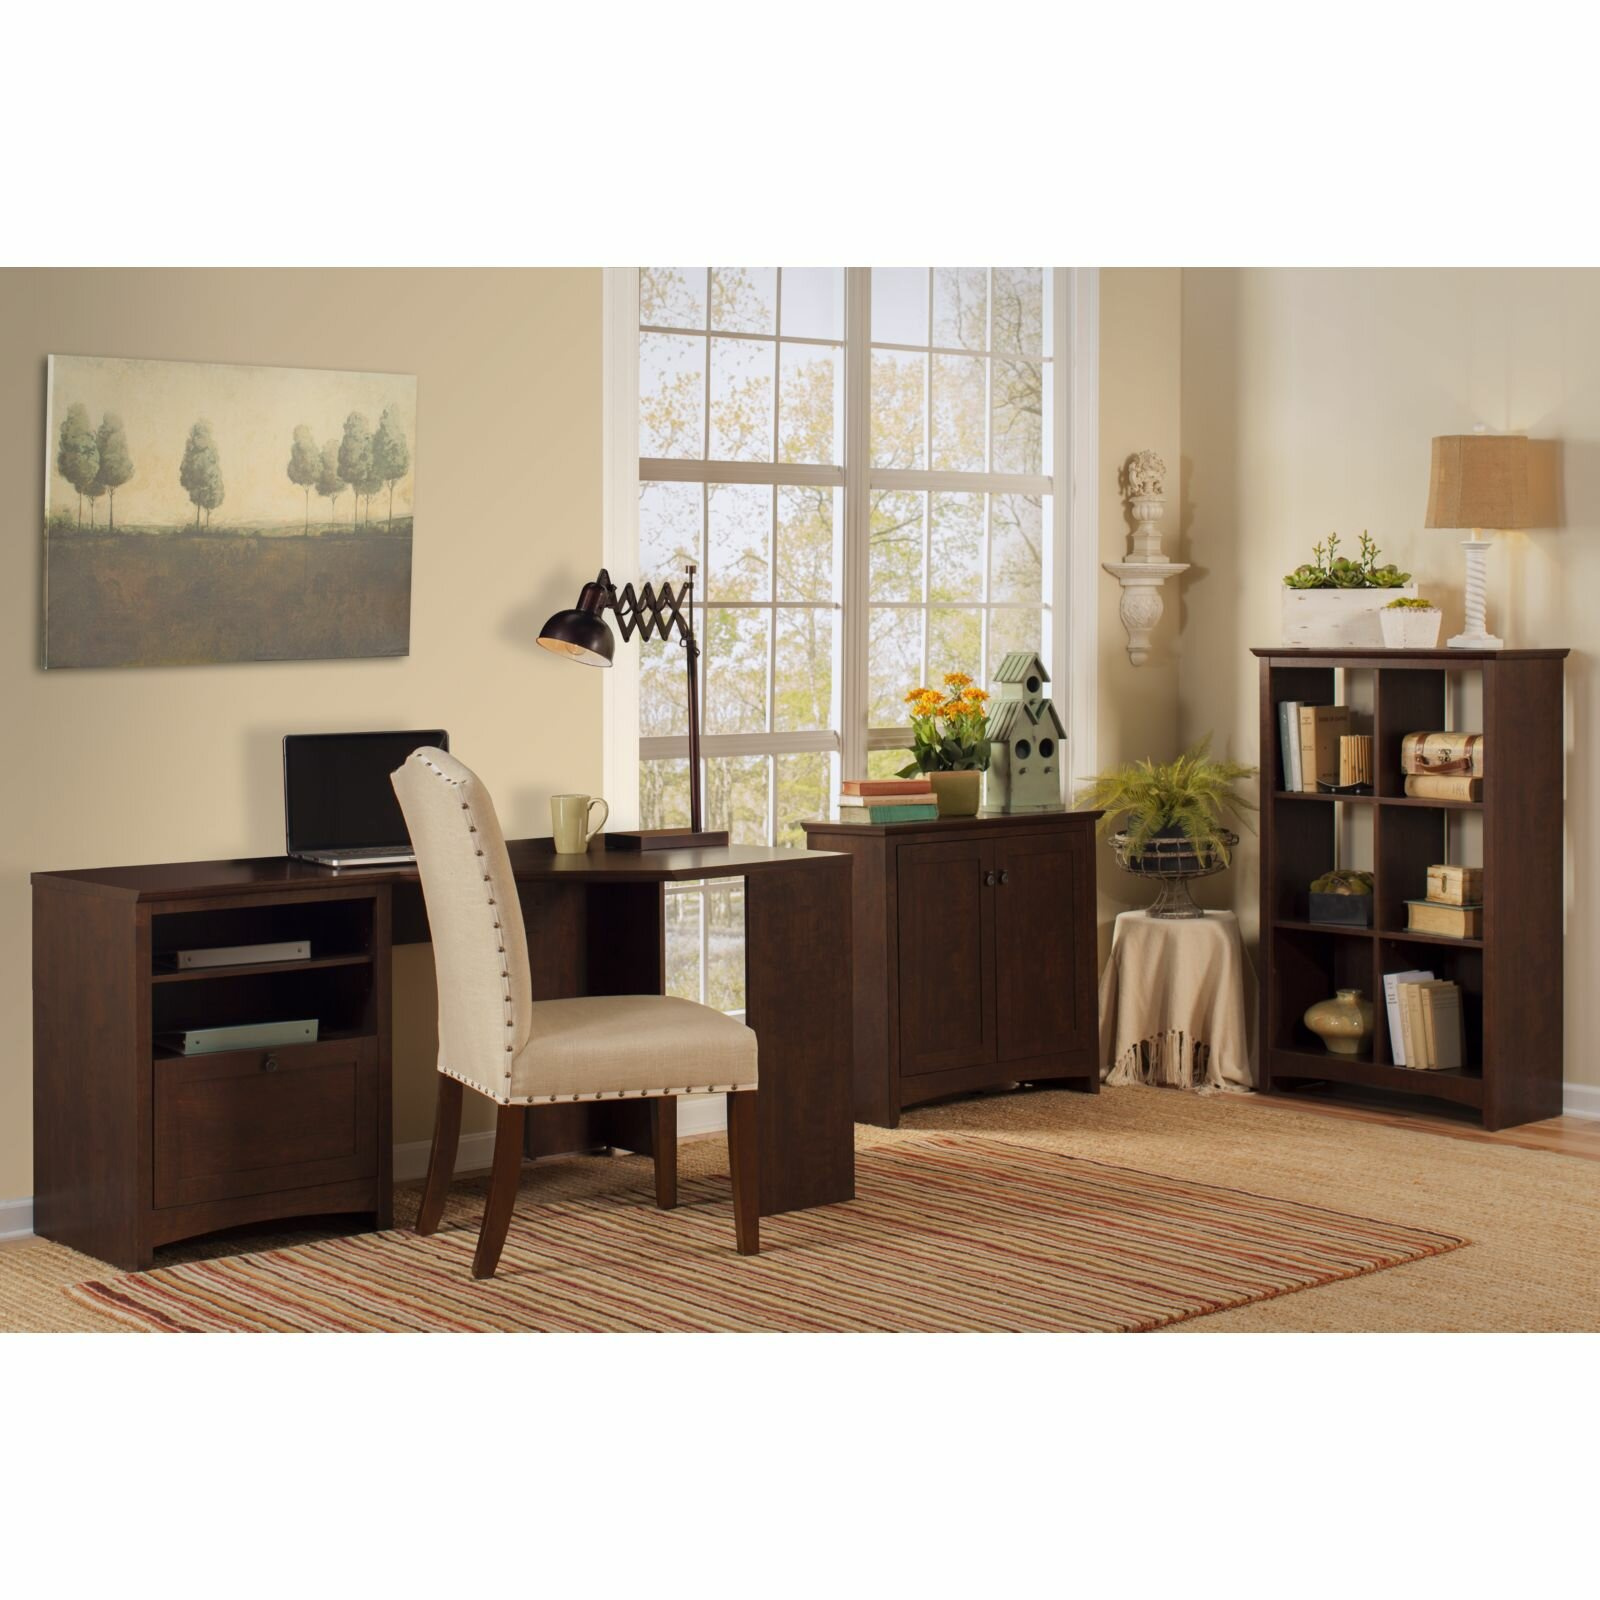 darby home co egger corner executive desk with 6 cube bookcase and low storage cabinet reviews. Black Bedroom Furniture Sets. Home Design Ideas